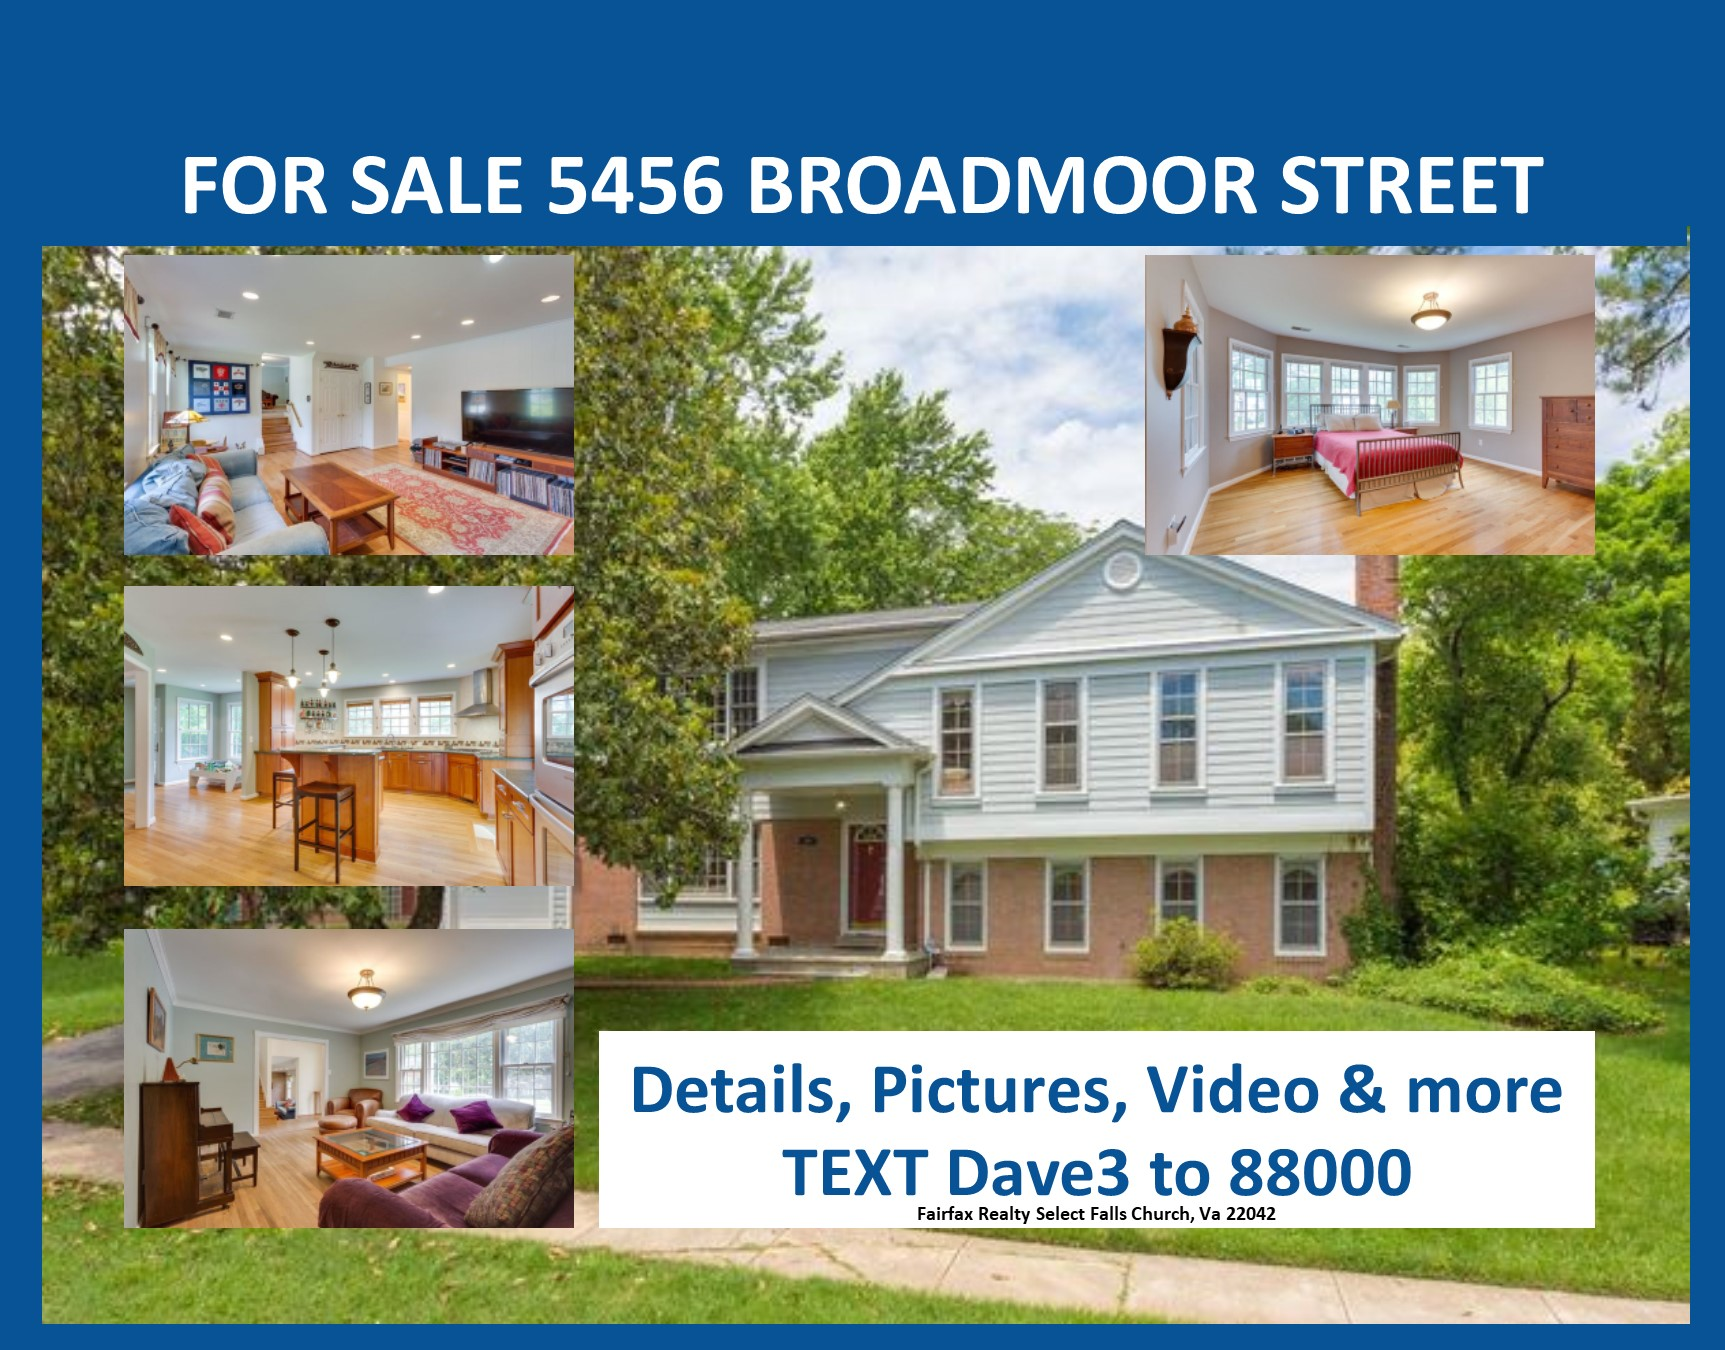 5456 Broadmoor St For Sale Contract Deadline